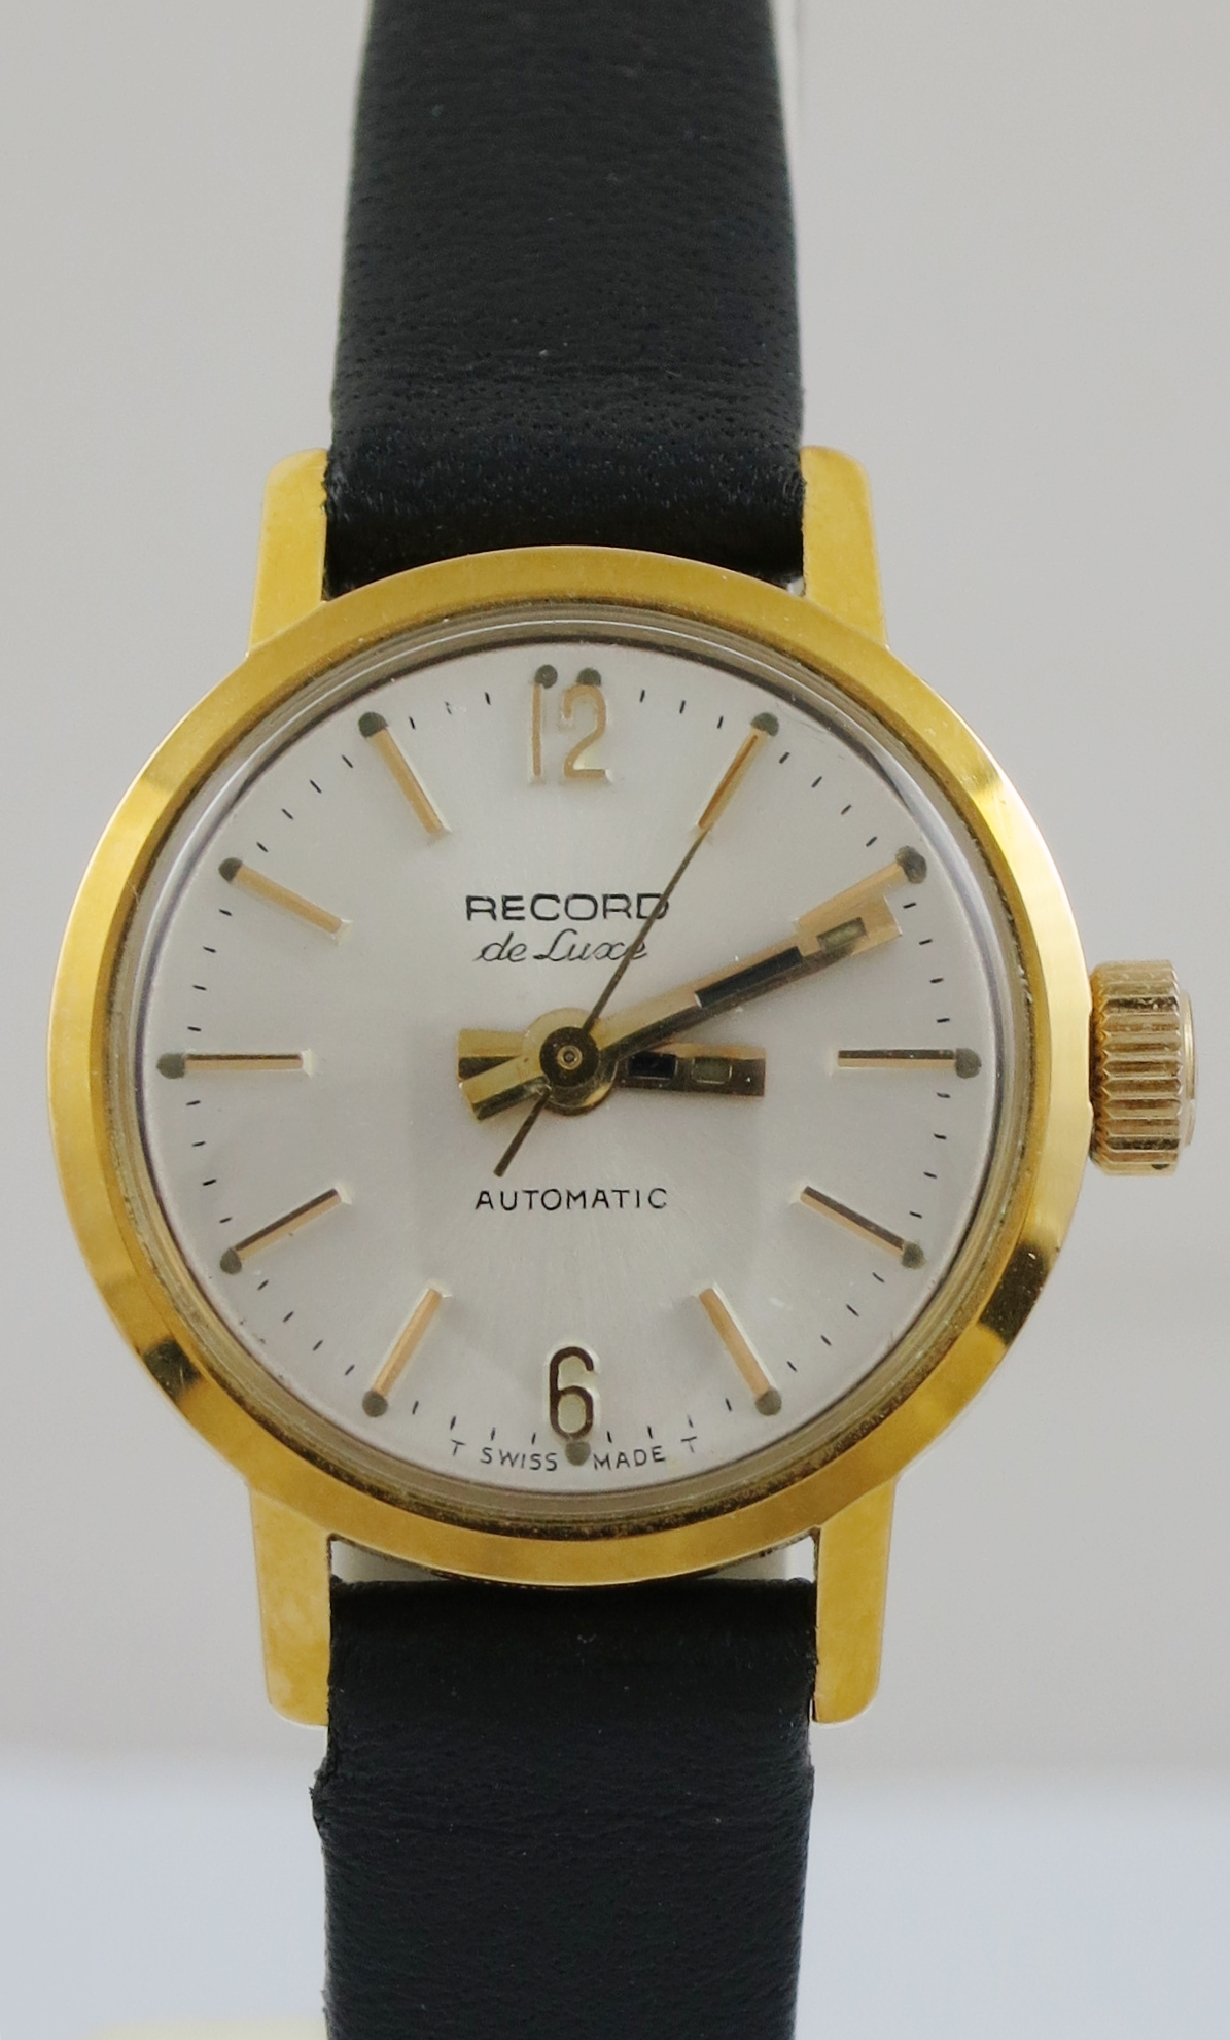 LADIES RECORD DE LUXE AUTOMATIC WATCH